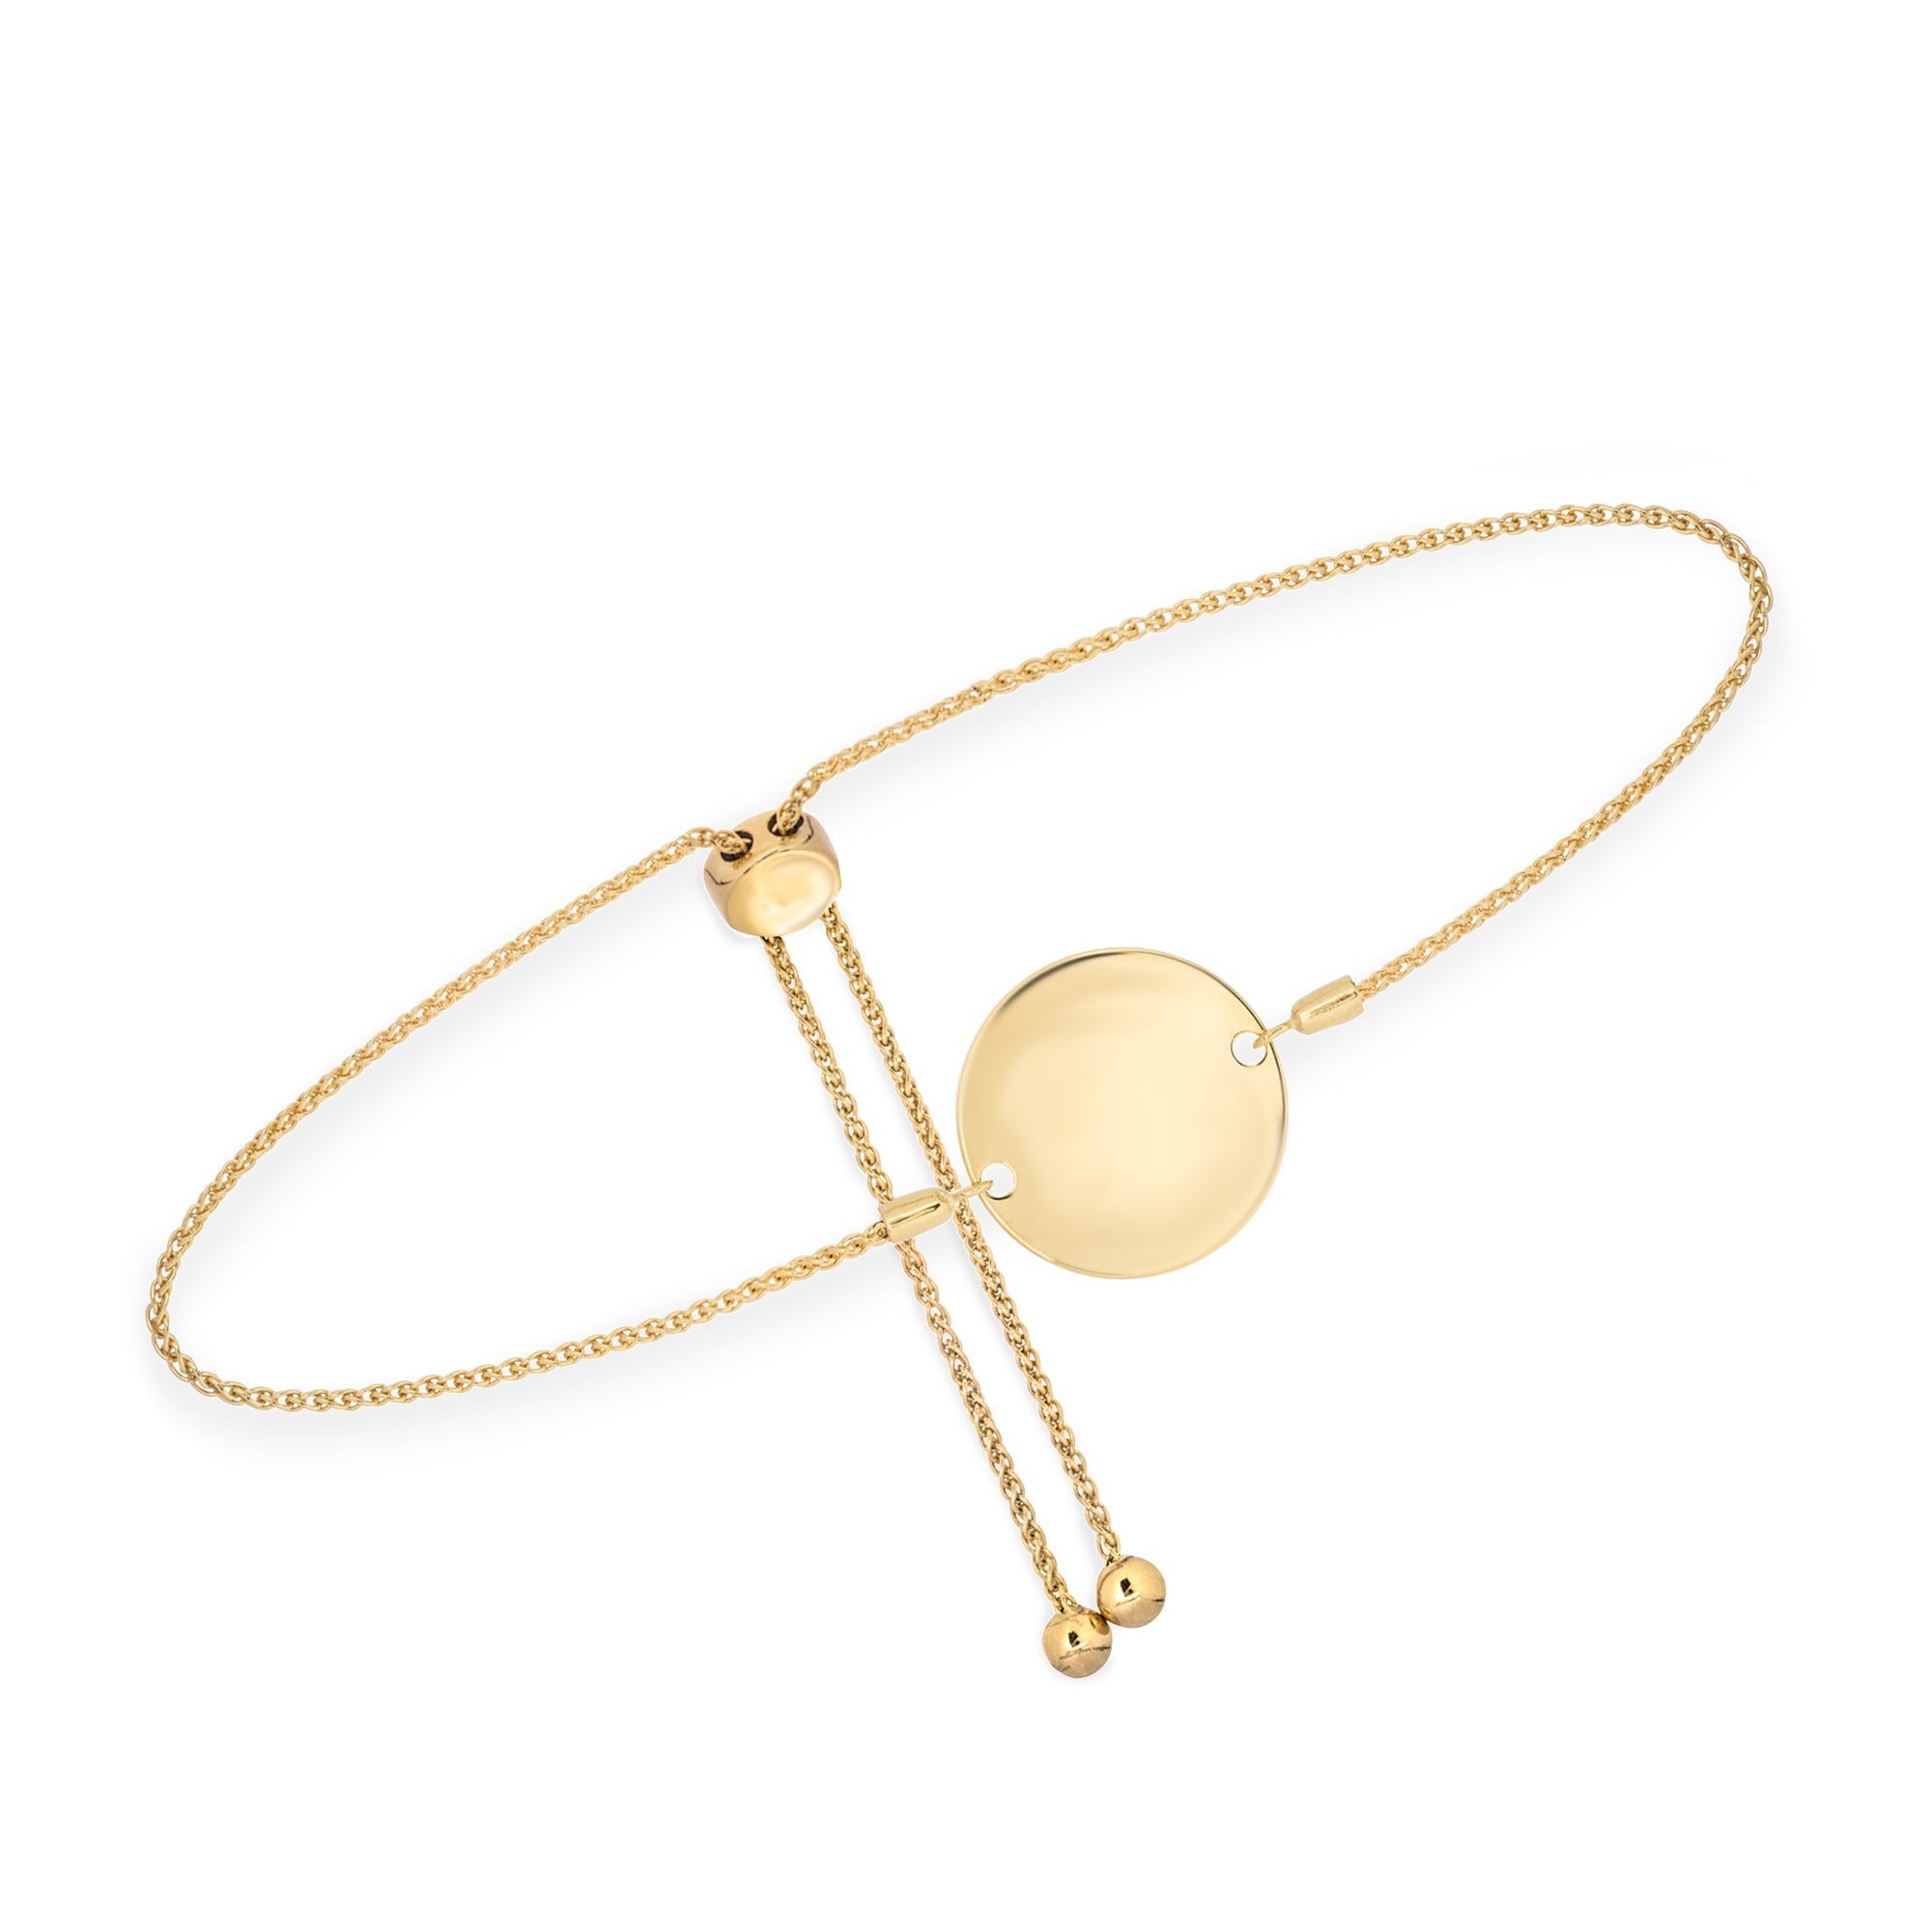 Hemsleys Collection 14K Engravable Round Disc Bolo Bracelet